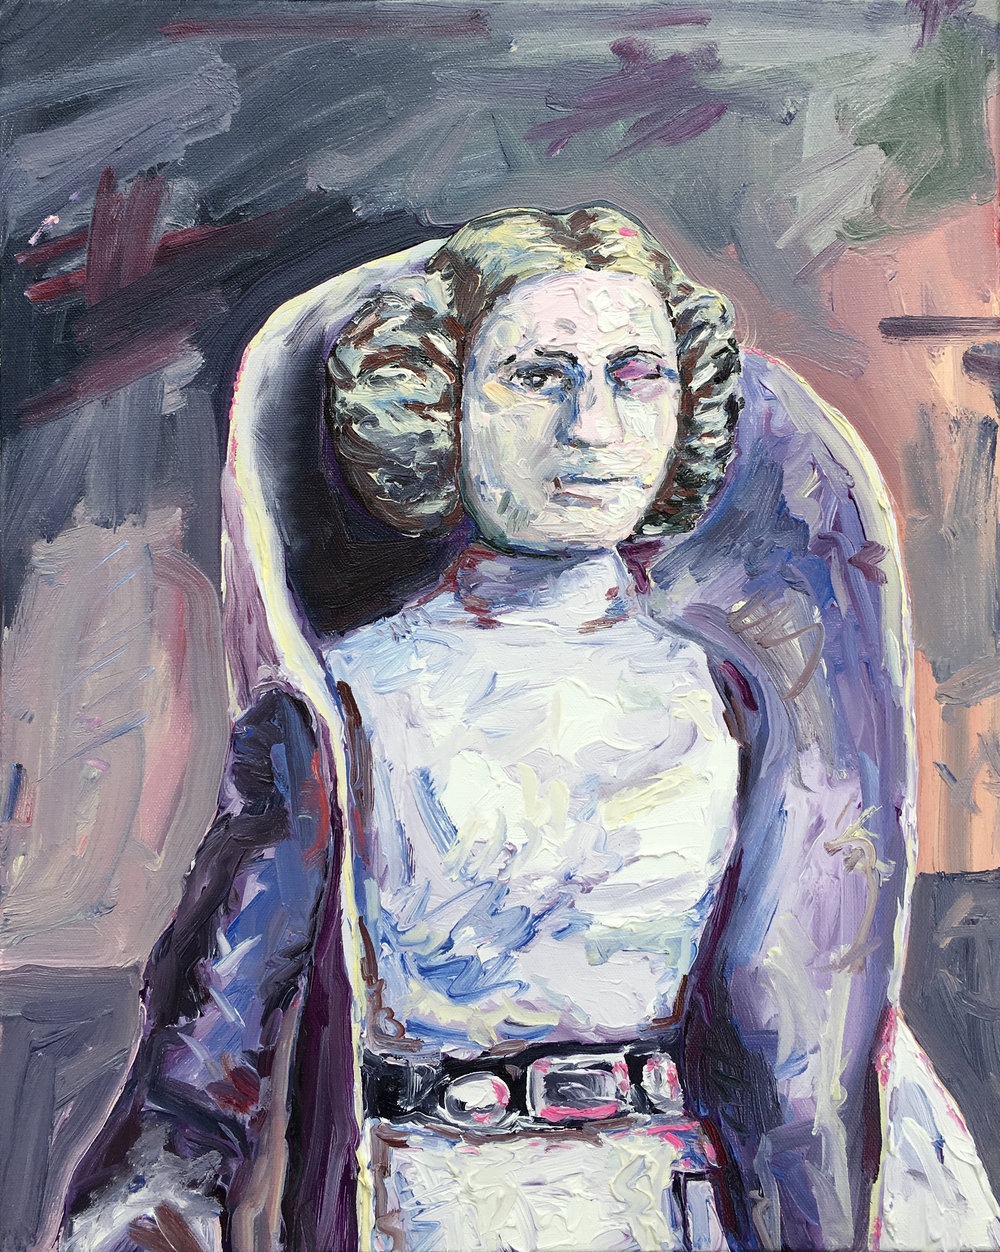 Untitled (1977 Princess Leia 2)